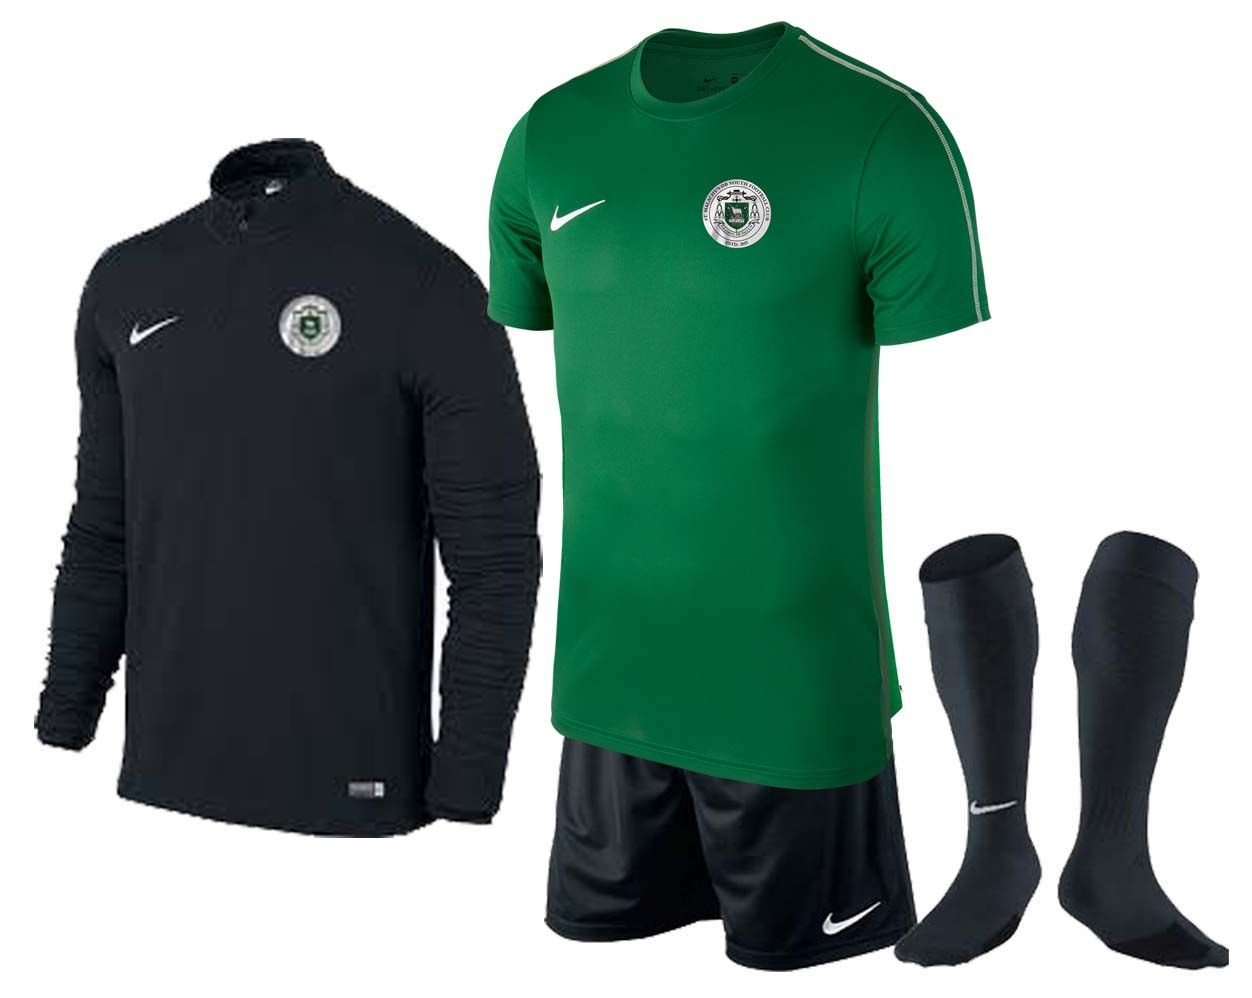 st malachy s ob player pack 2 26079 1 p